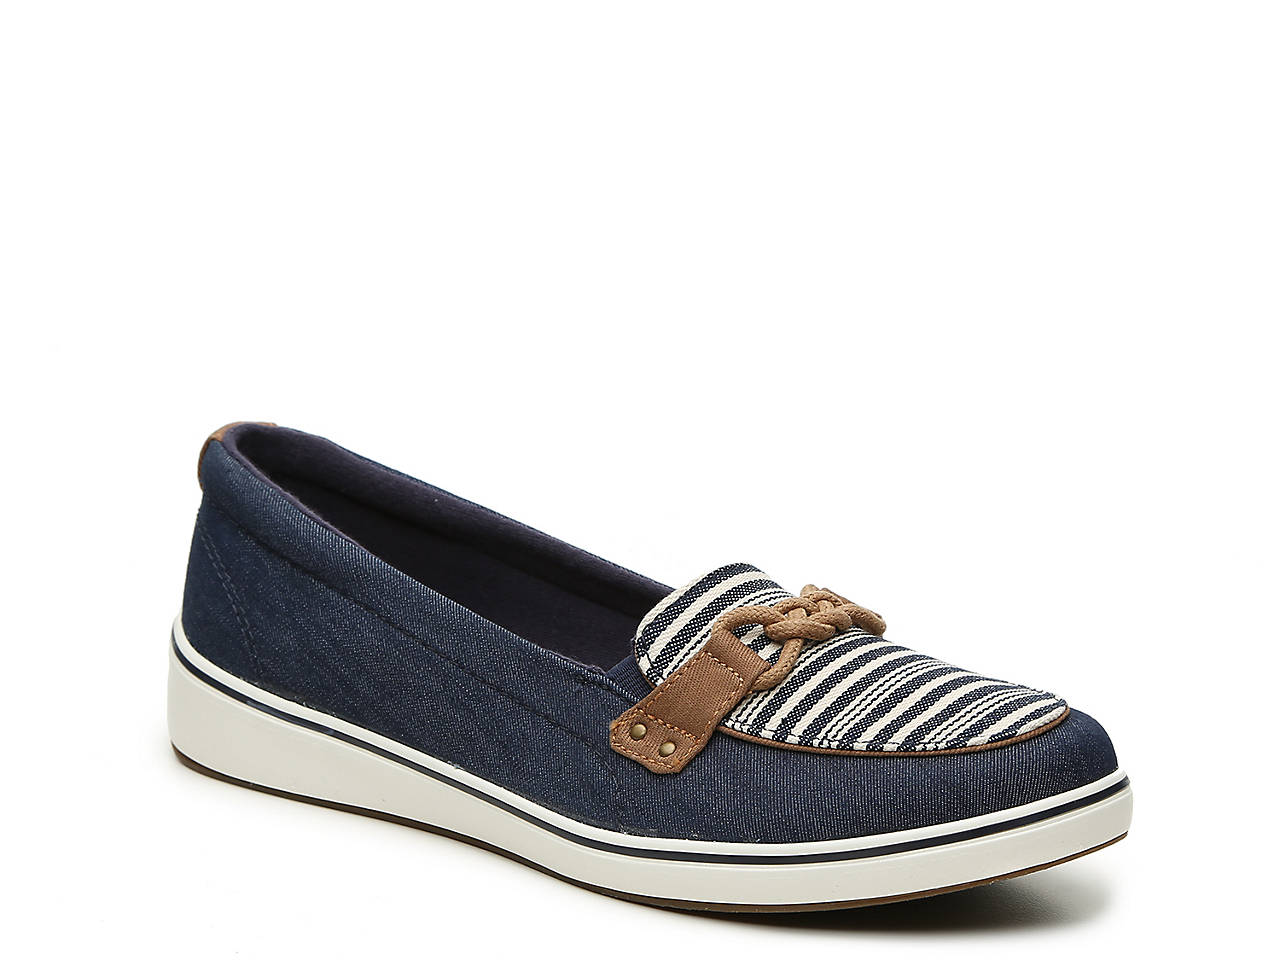 73589d0c02ec5 Grasshoppers Windham Boat Shoe Women s Shoes